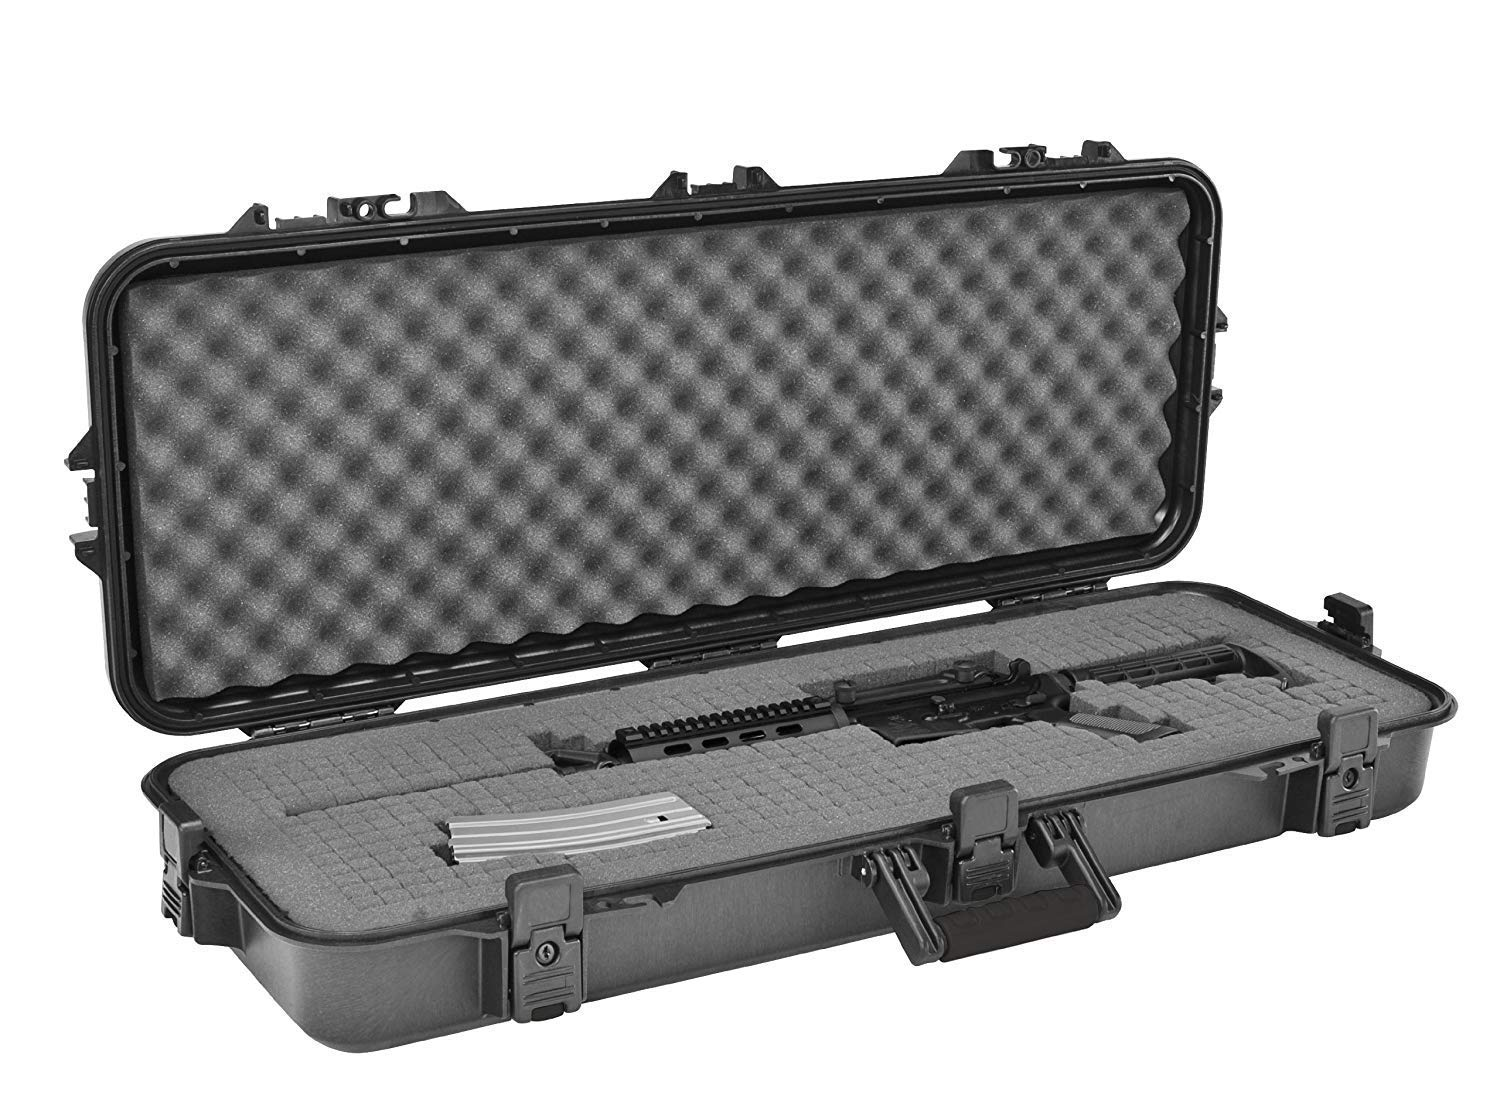 Plano All Weather Tactical Gun Case, 42-Inch (Pack of 2) by Plano (Image #2)